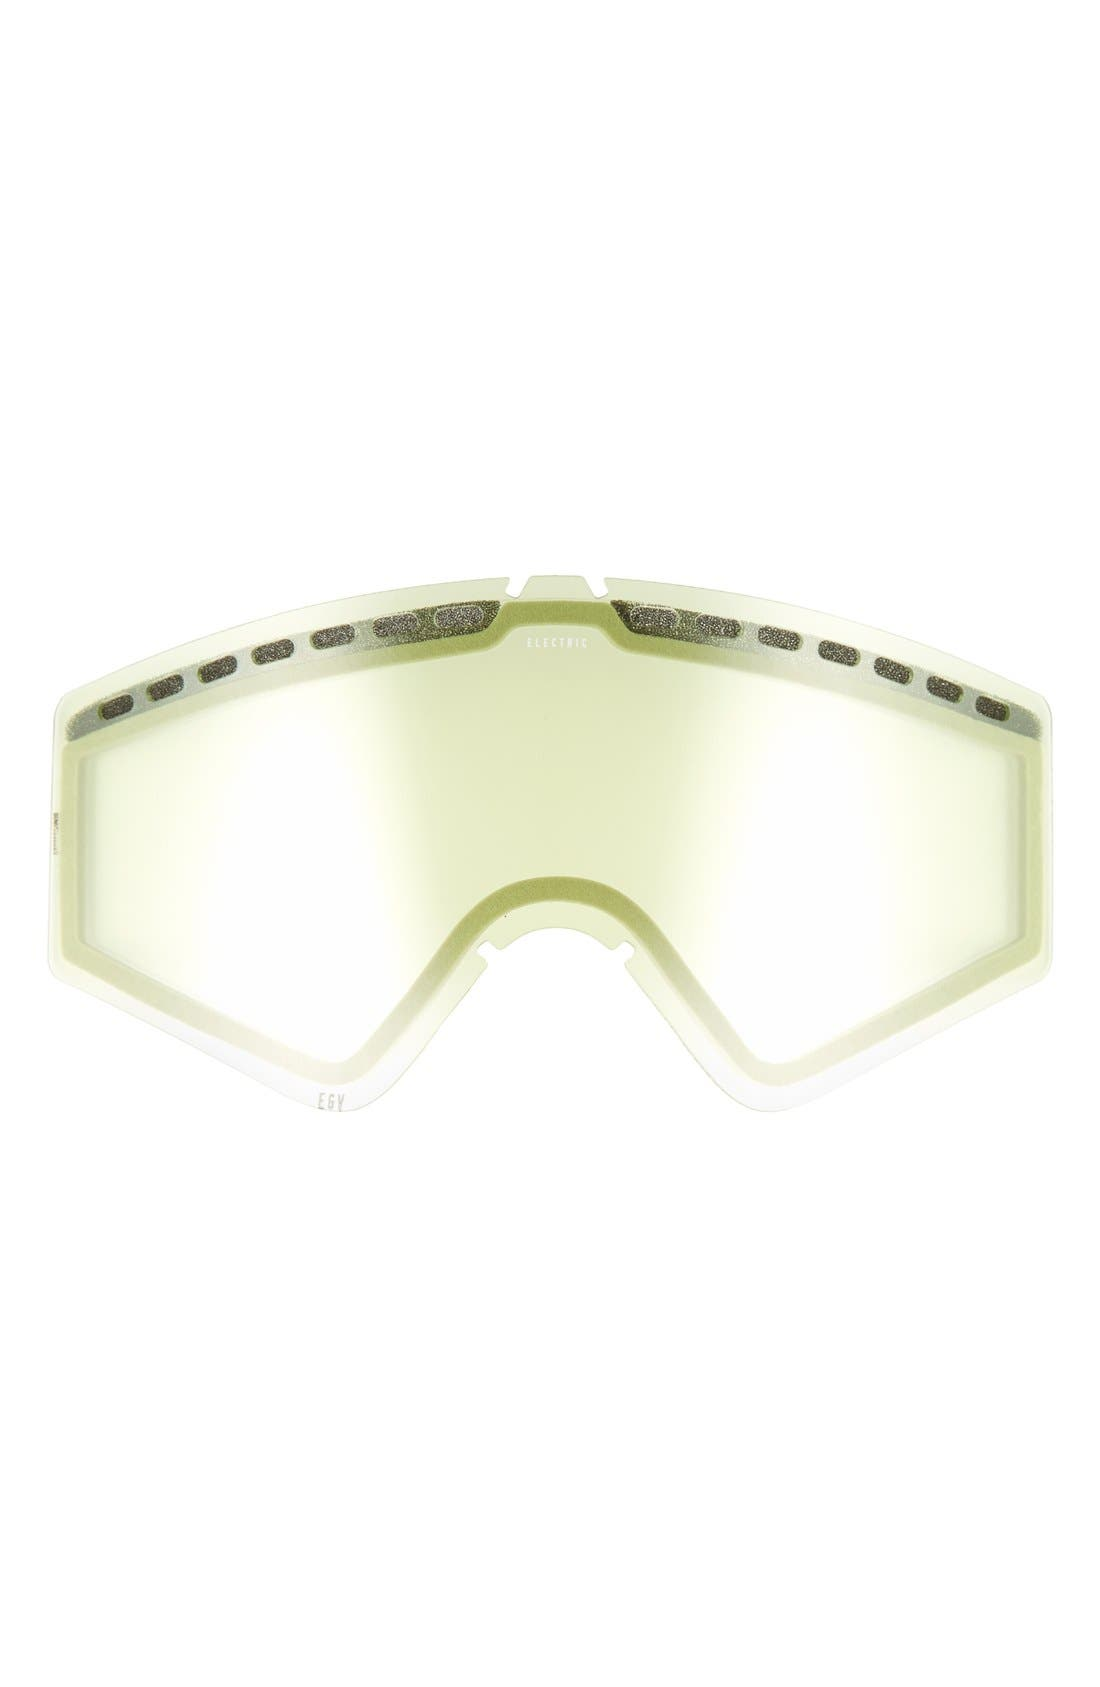 EGV 200mm Snow Goggles,                             Alternate thumbnail 2, color,                             001